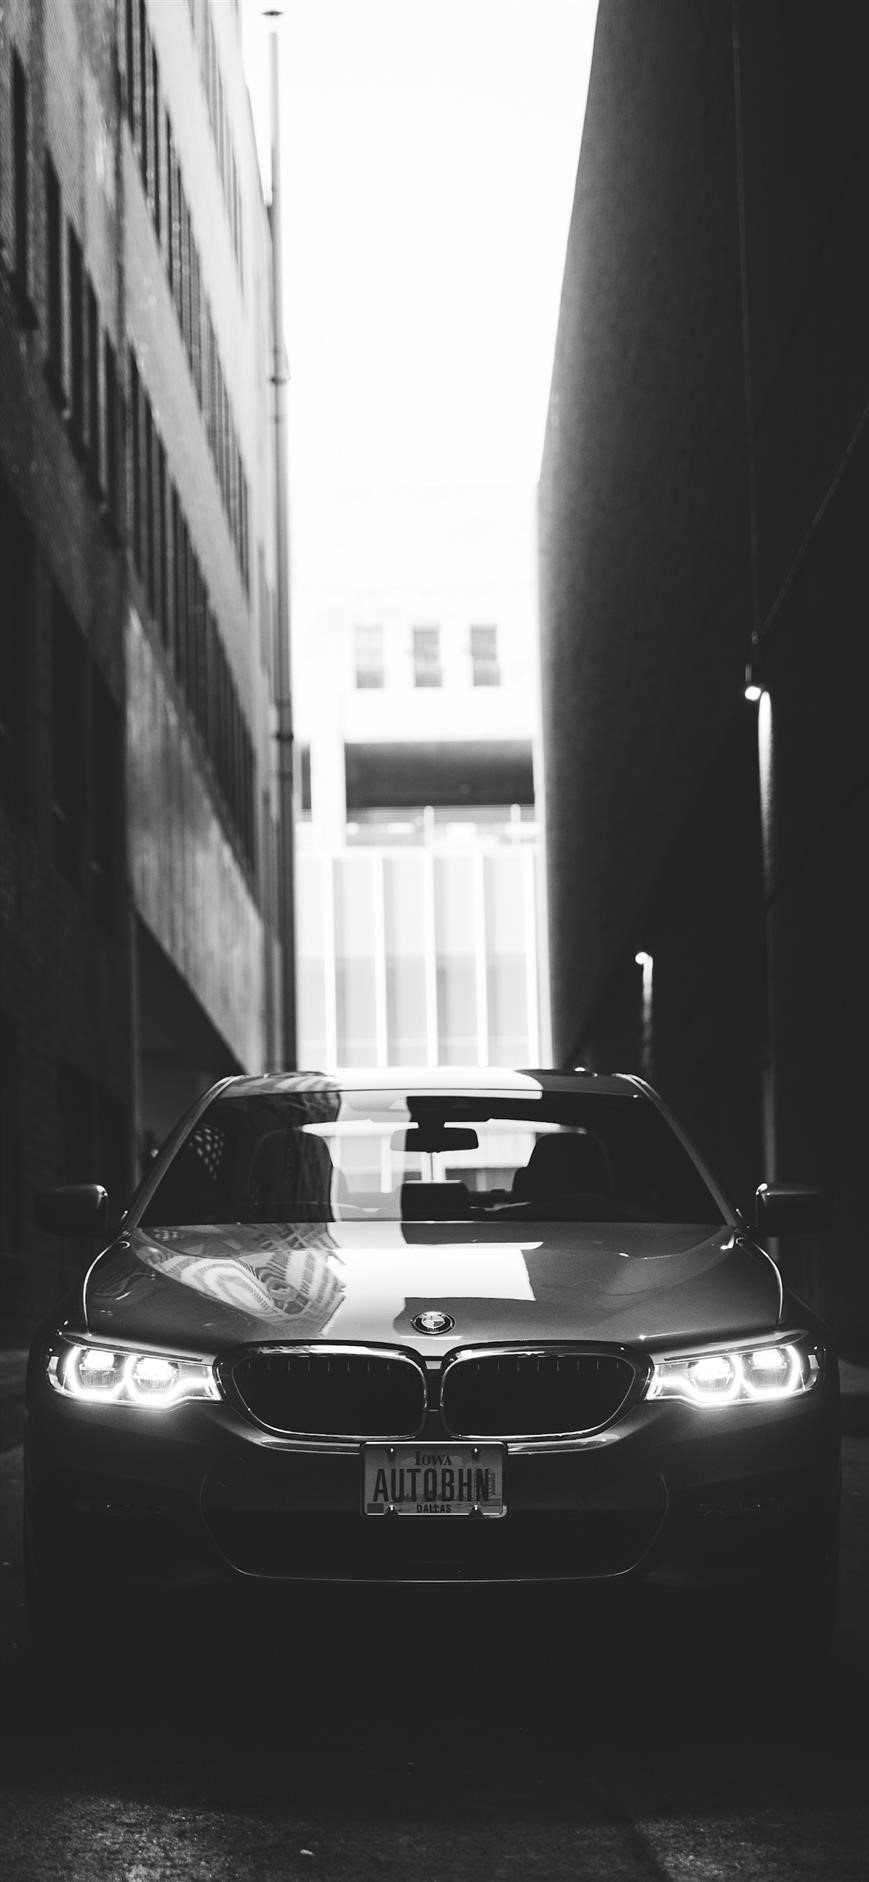 iPhone wallpapers cars bmw black and white